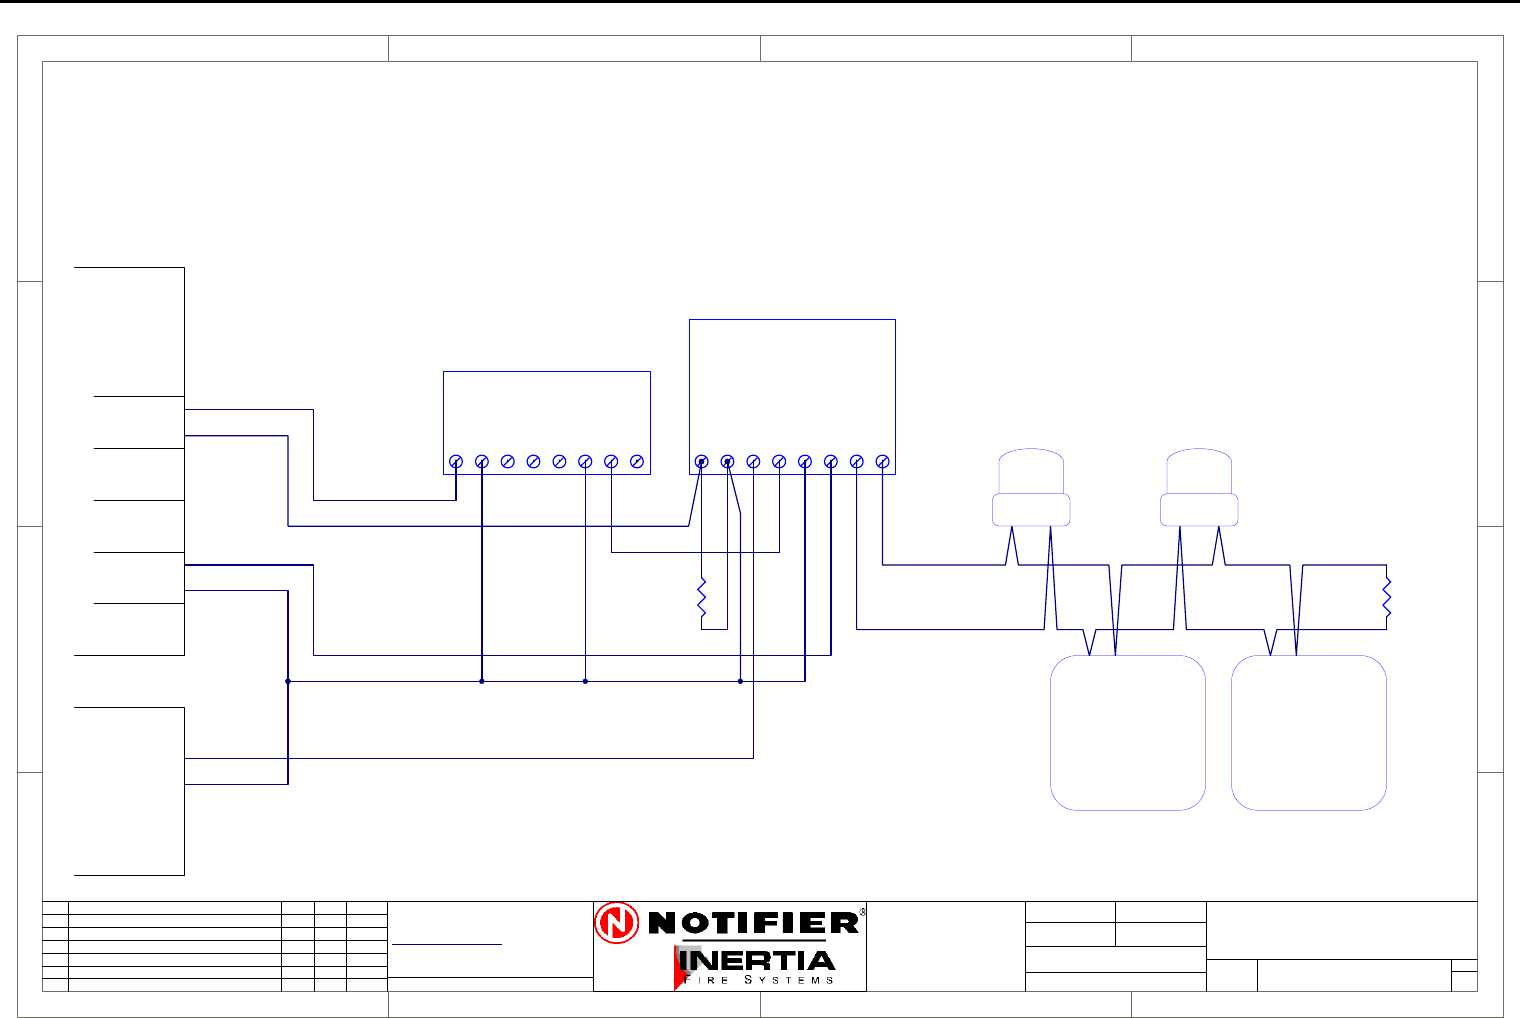 Ifs 40 Wiring Diagram Bgmt Data Imperial Fryer Remarkable Notifier Fire Alarm Images Parts Fryers Gas